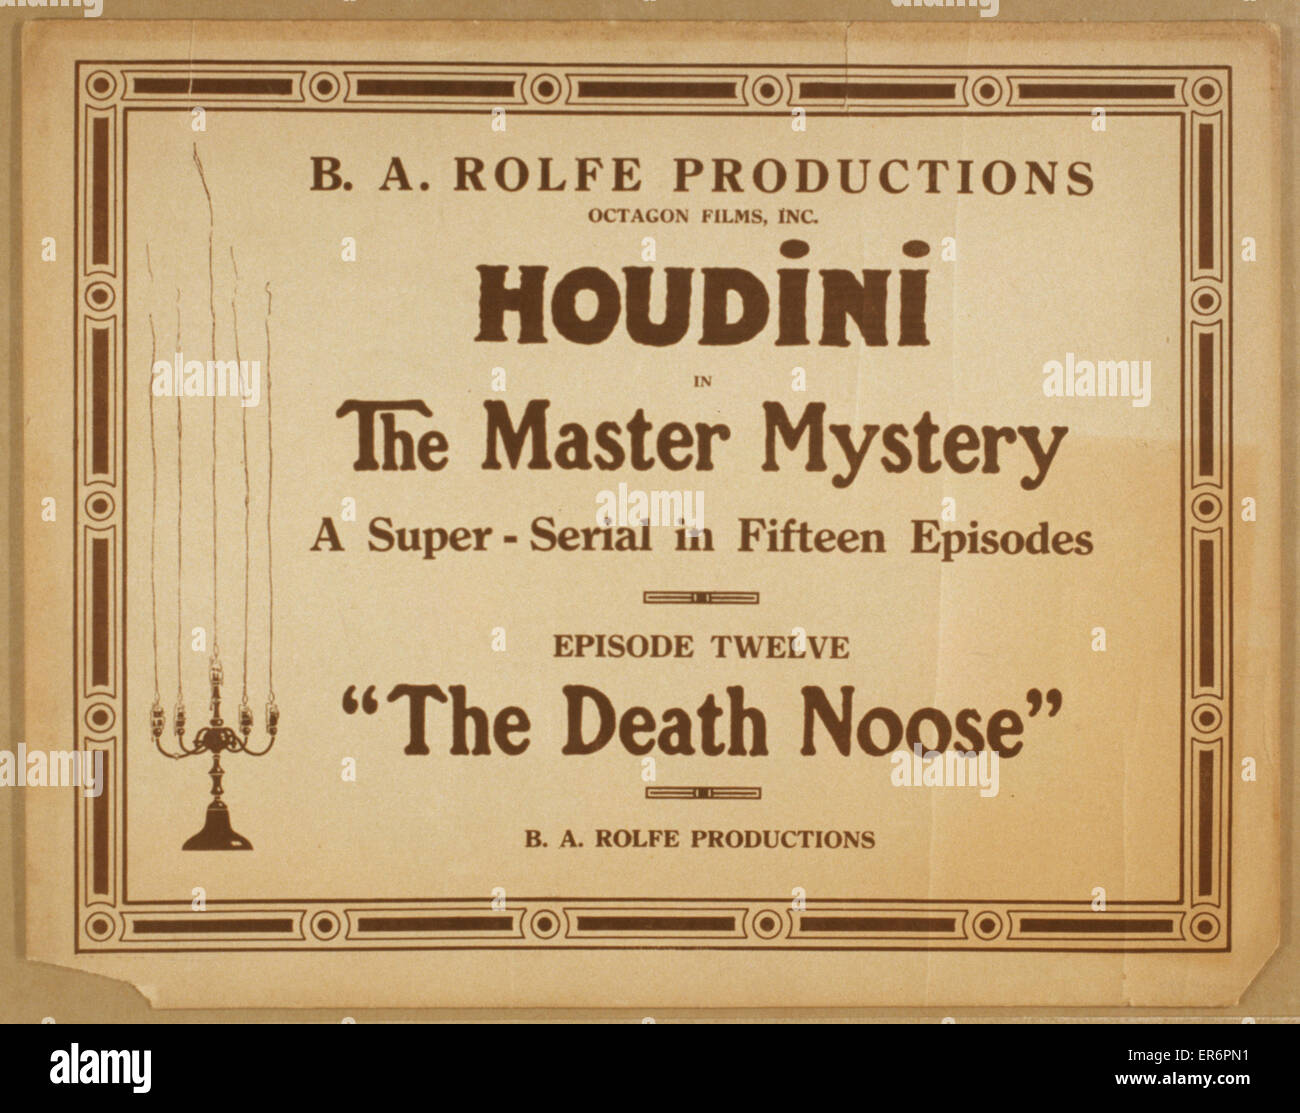 Houdini in The master mystery a super-serial in fifteen episodes. Date 19 - ?. - Stock Image